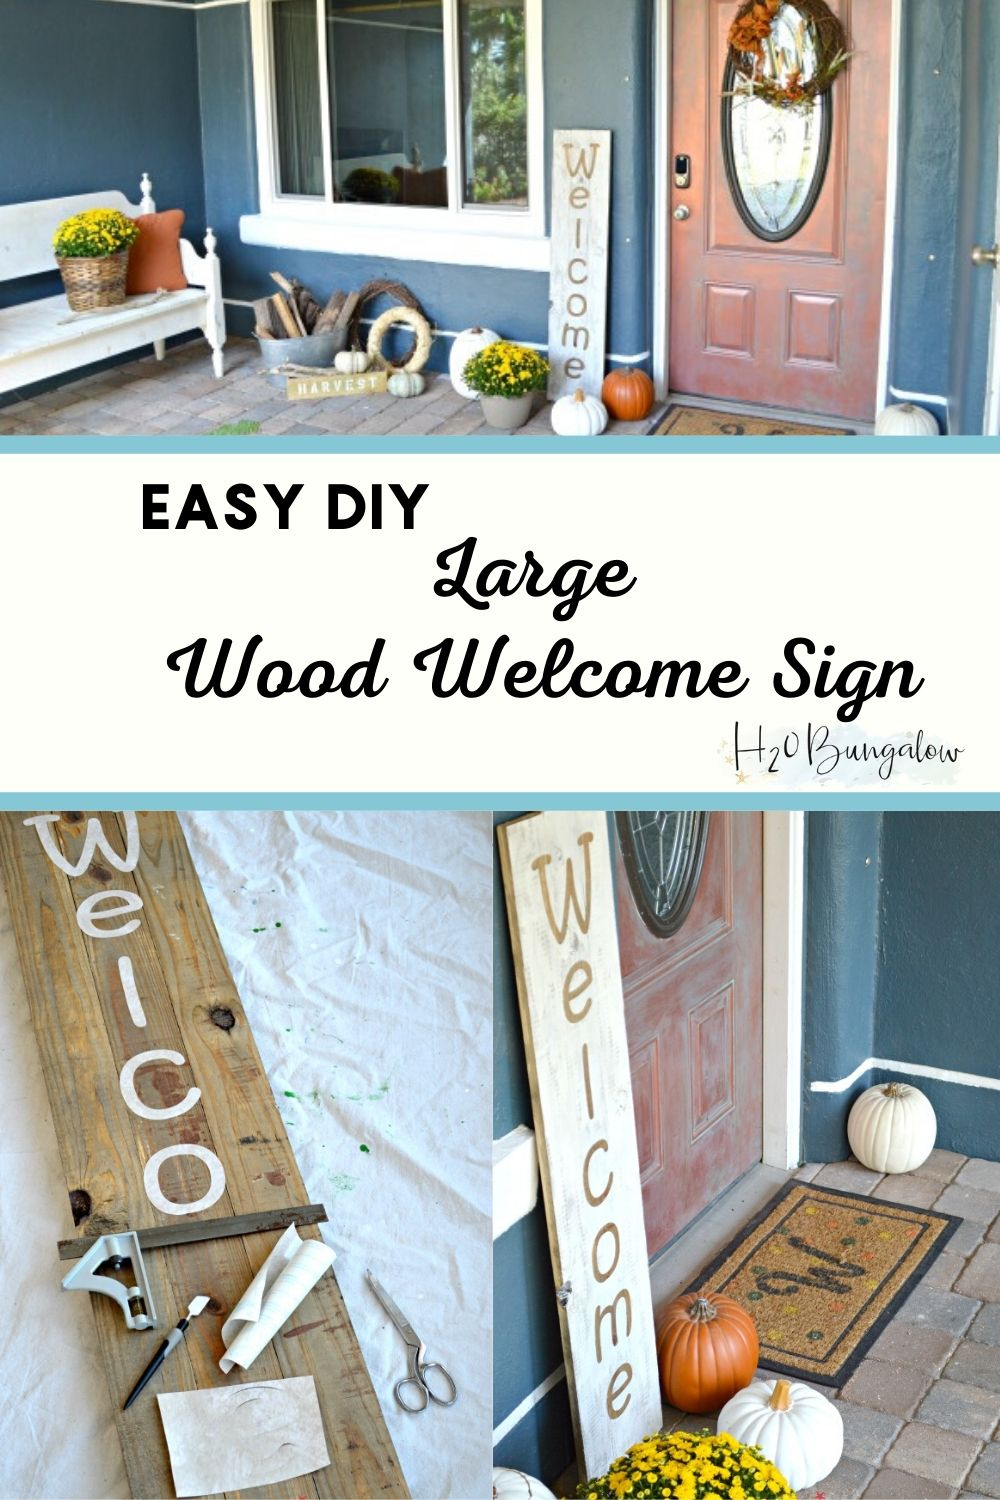 4 step tutorial to make an easy large DIY wood welcome sign. Looks great by the front door or inside in a seasonal vignette. Save money and make your own!